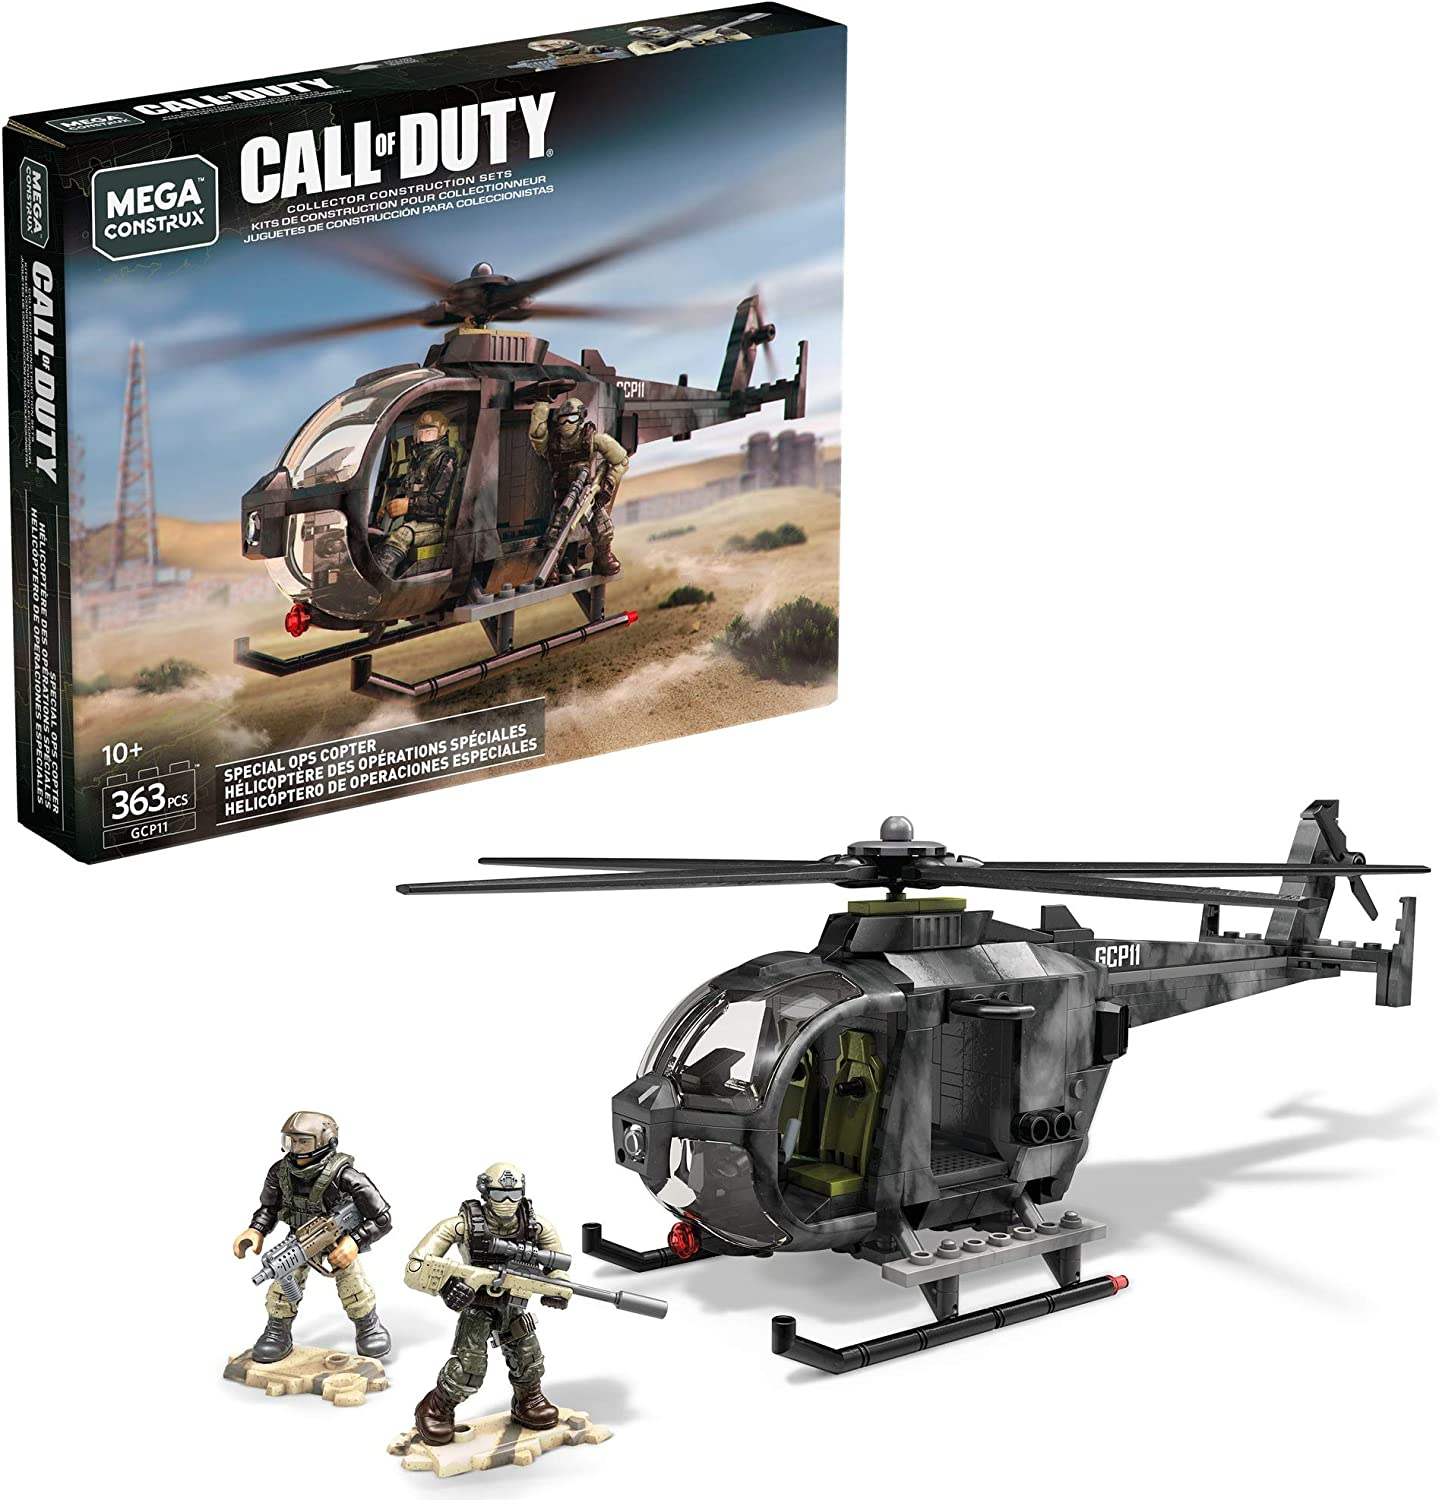 24. Mega Construx Call of Duty Special Ops Copter Construction Set with character figures